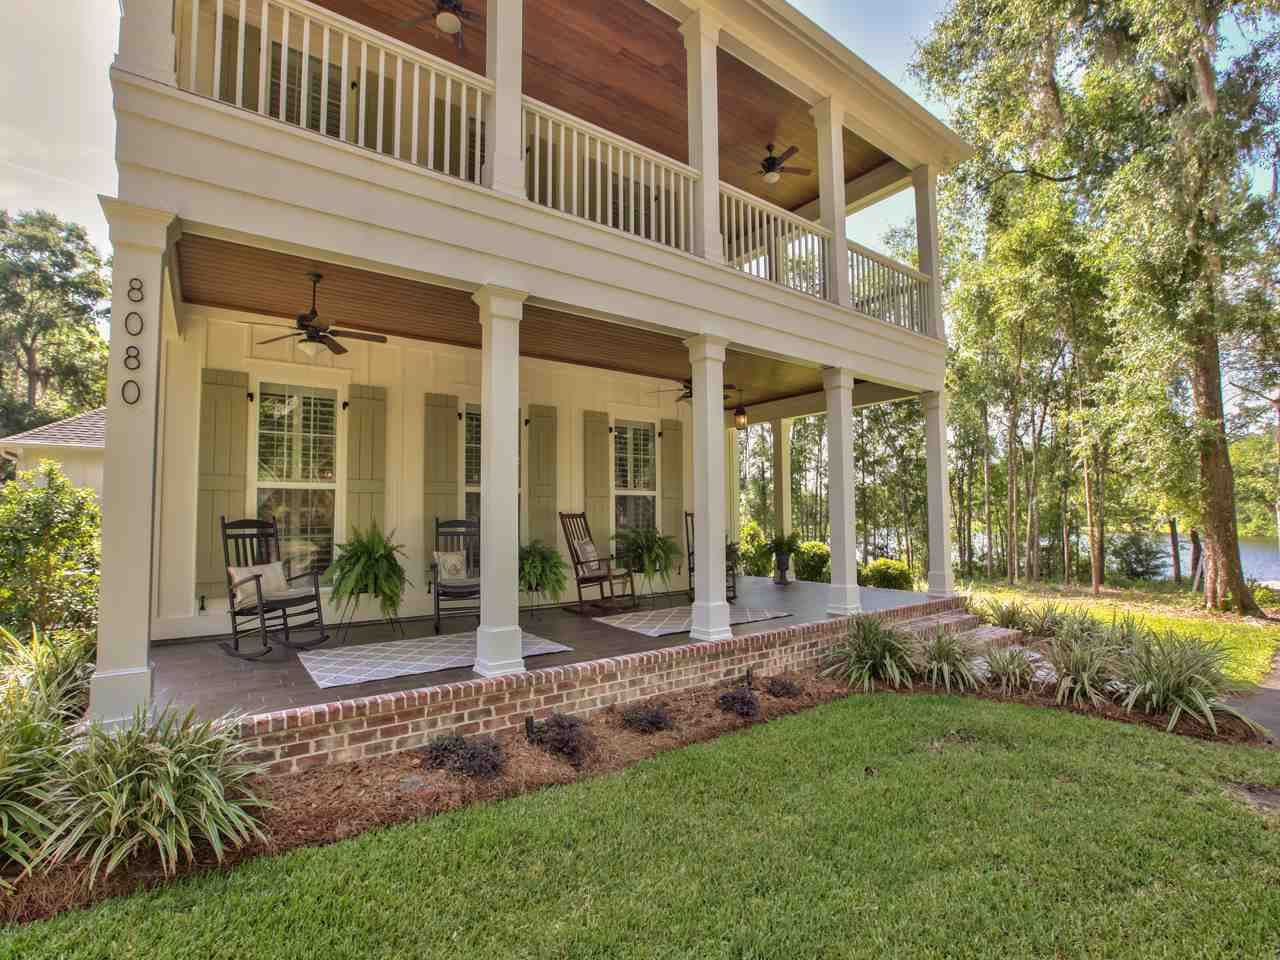 Photo of 8080 Lantern Light Road, TALLAHASSEE, FL 32312 (MLS # 318940)